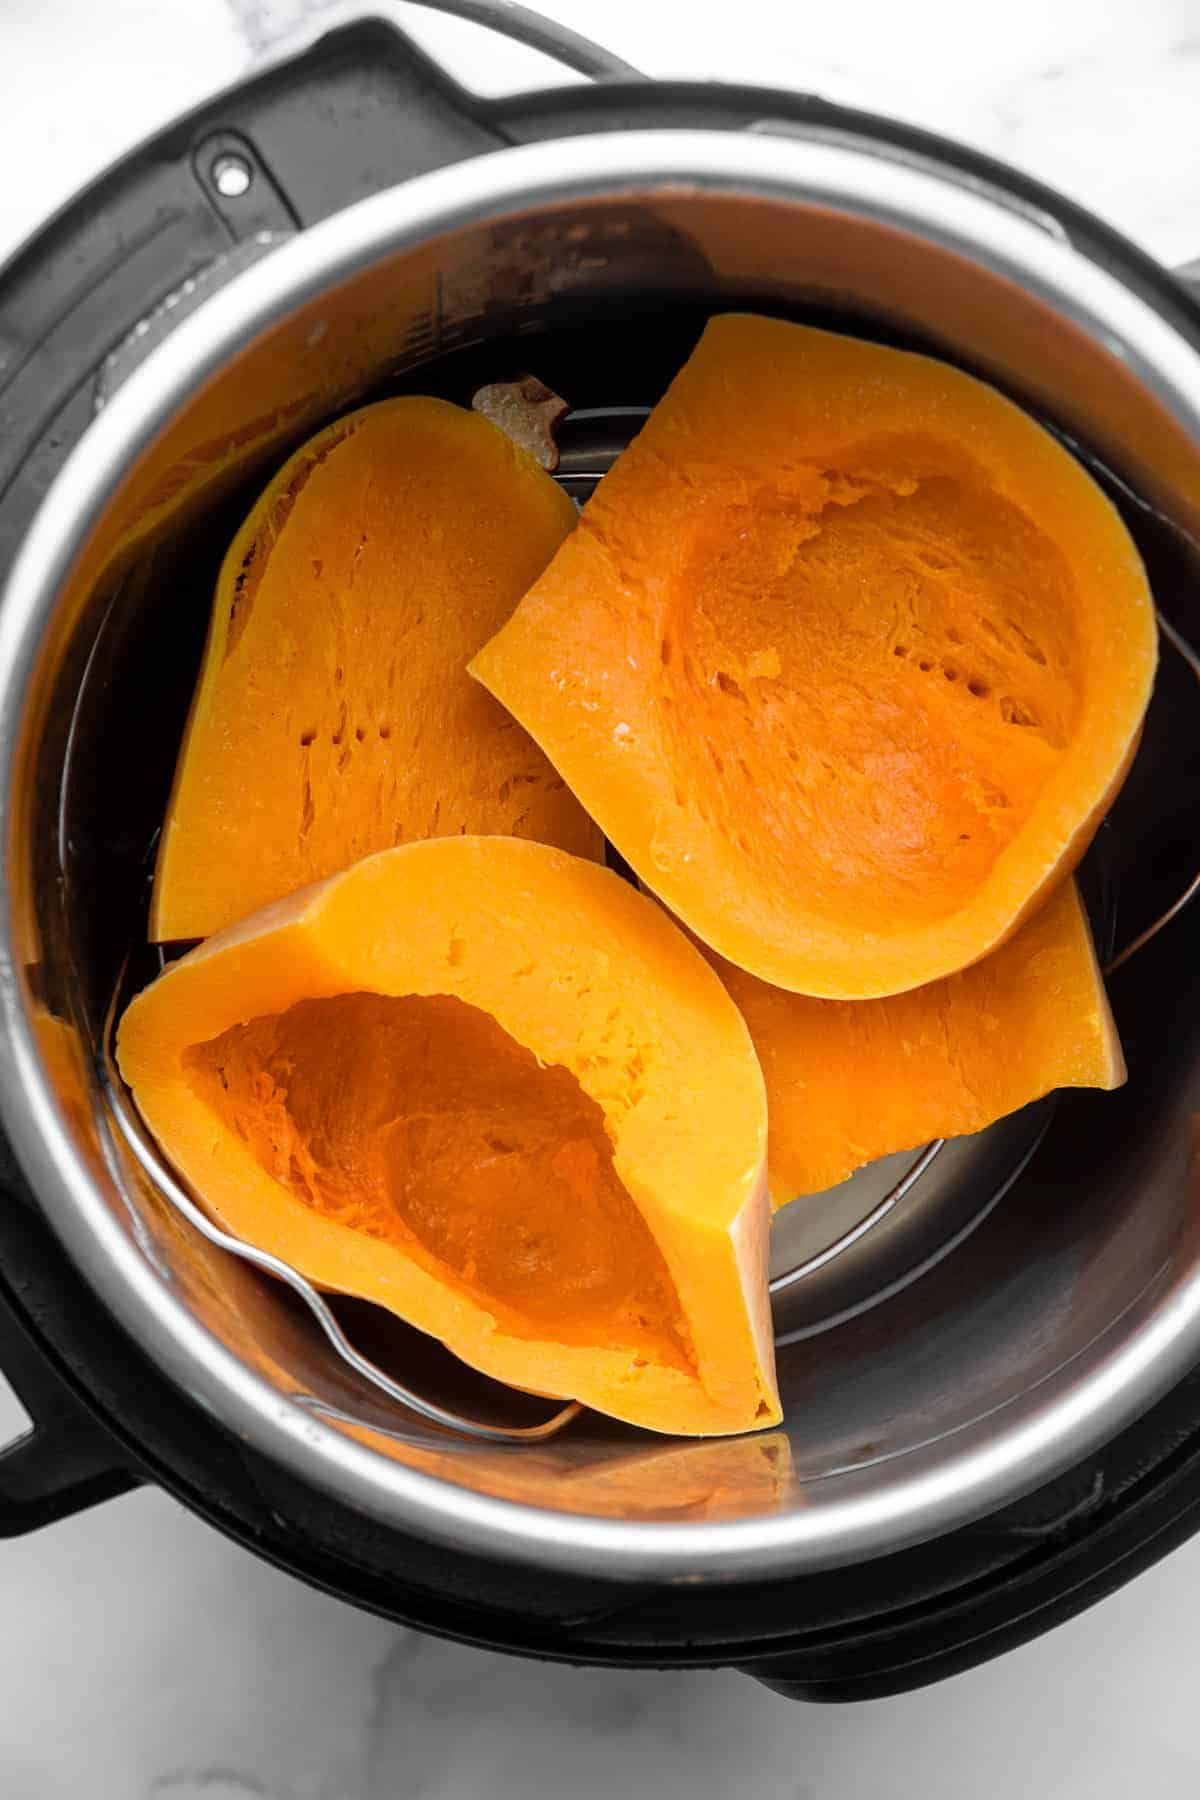 Instant Pot Butternut Squash in a pot ready to be cooked